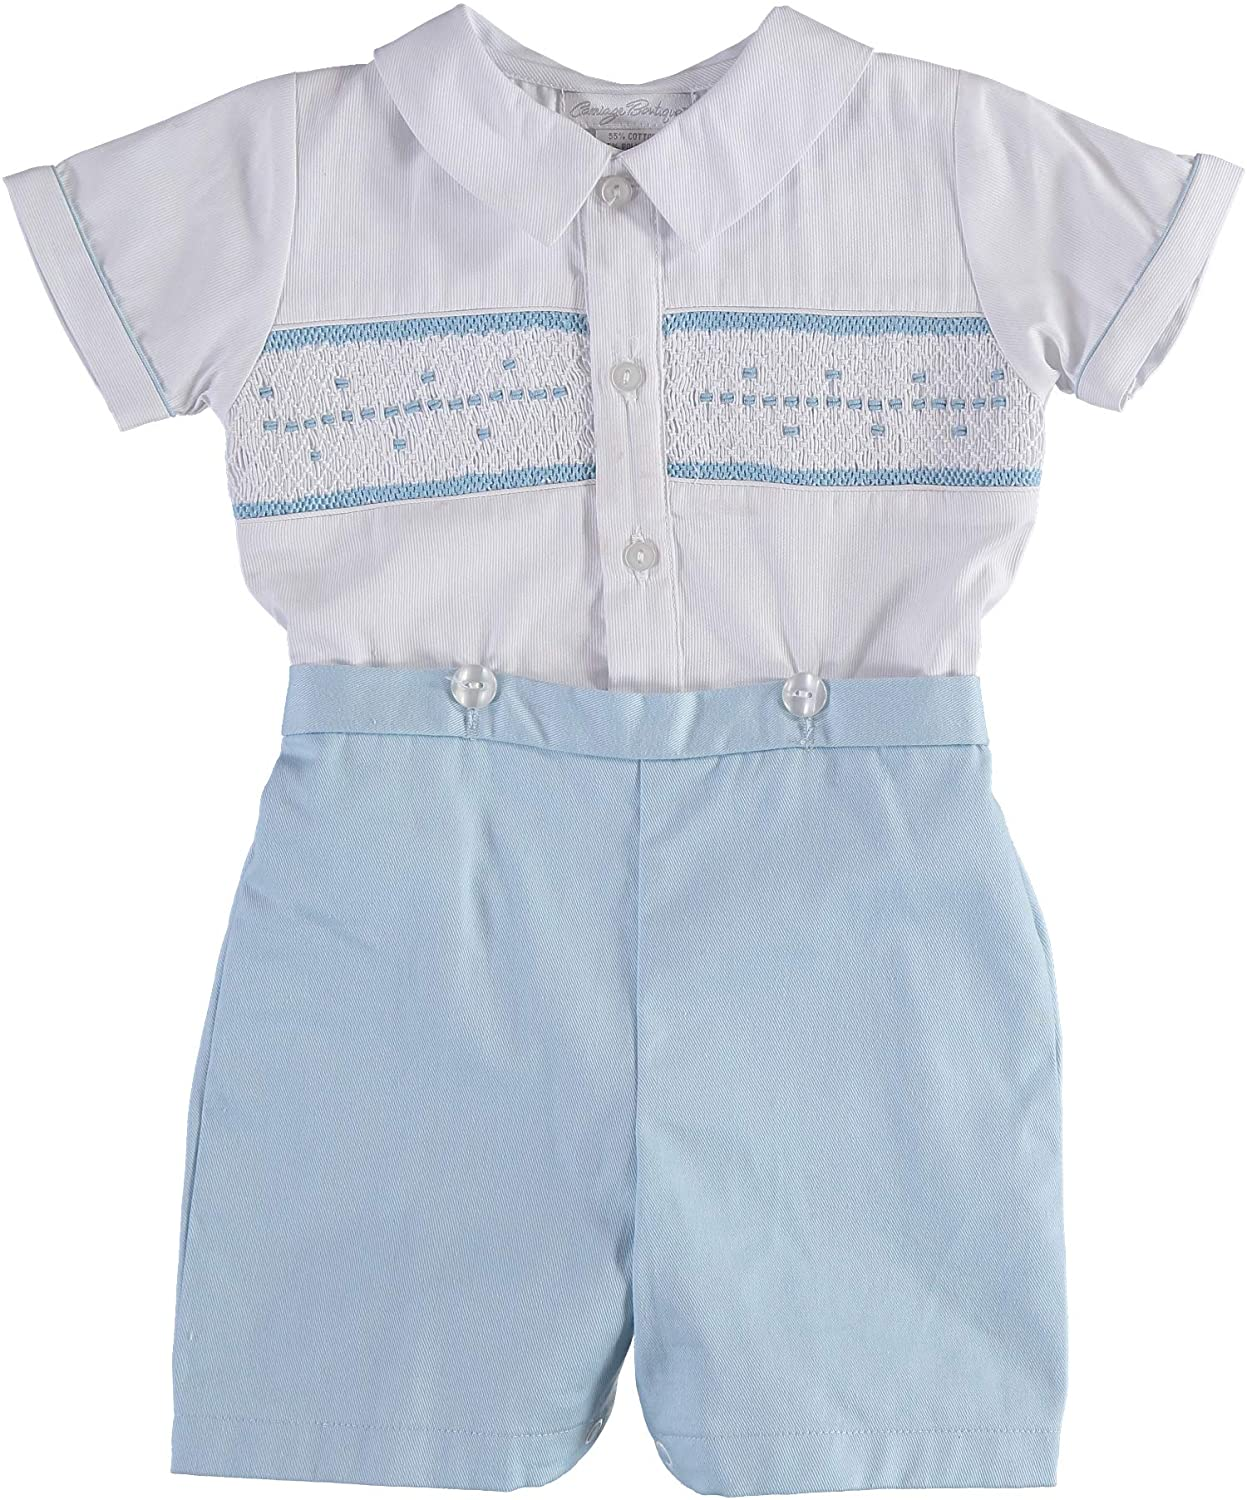 Boys Short Romper Set White Shirt and Attached Blue Shorts Bobbie Suit with Hand Smocking